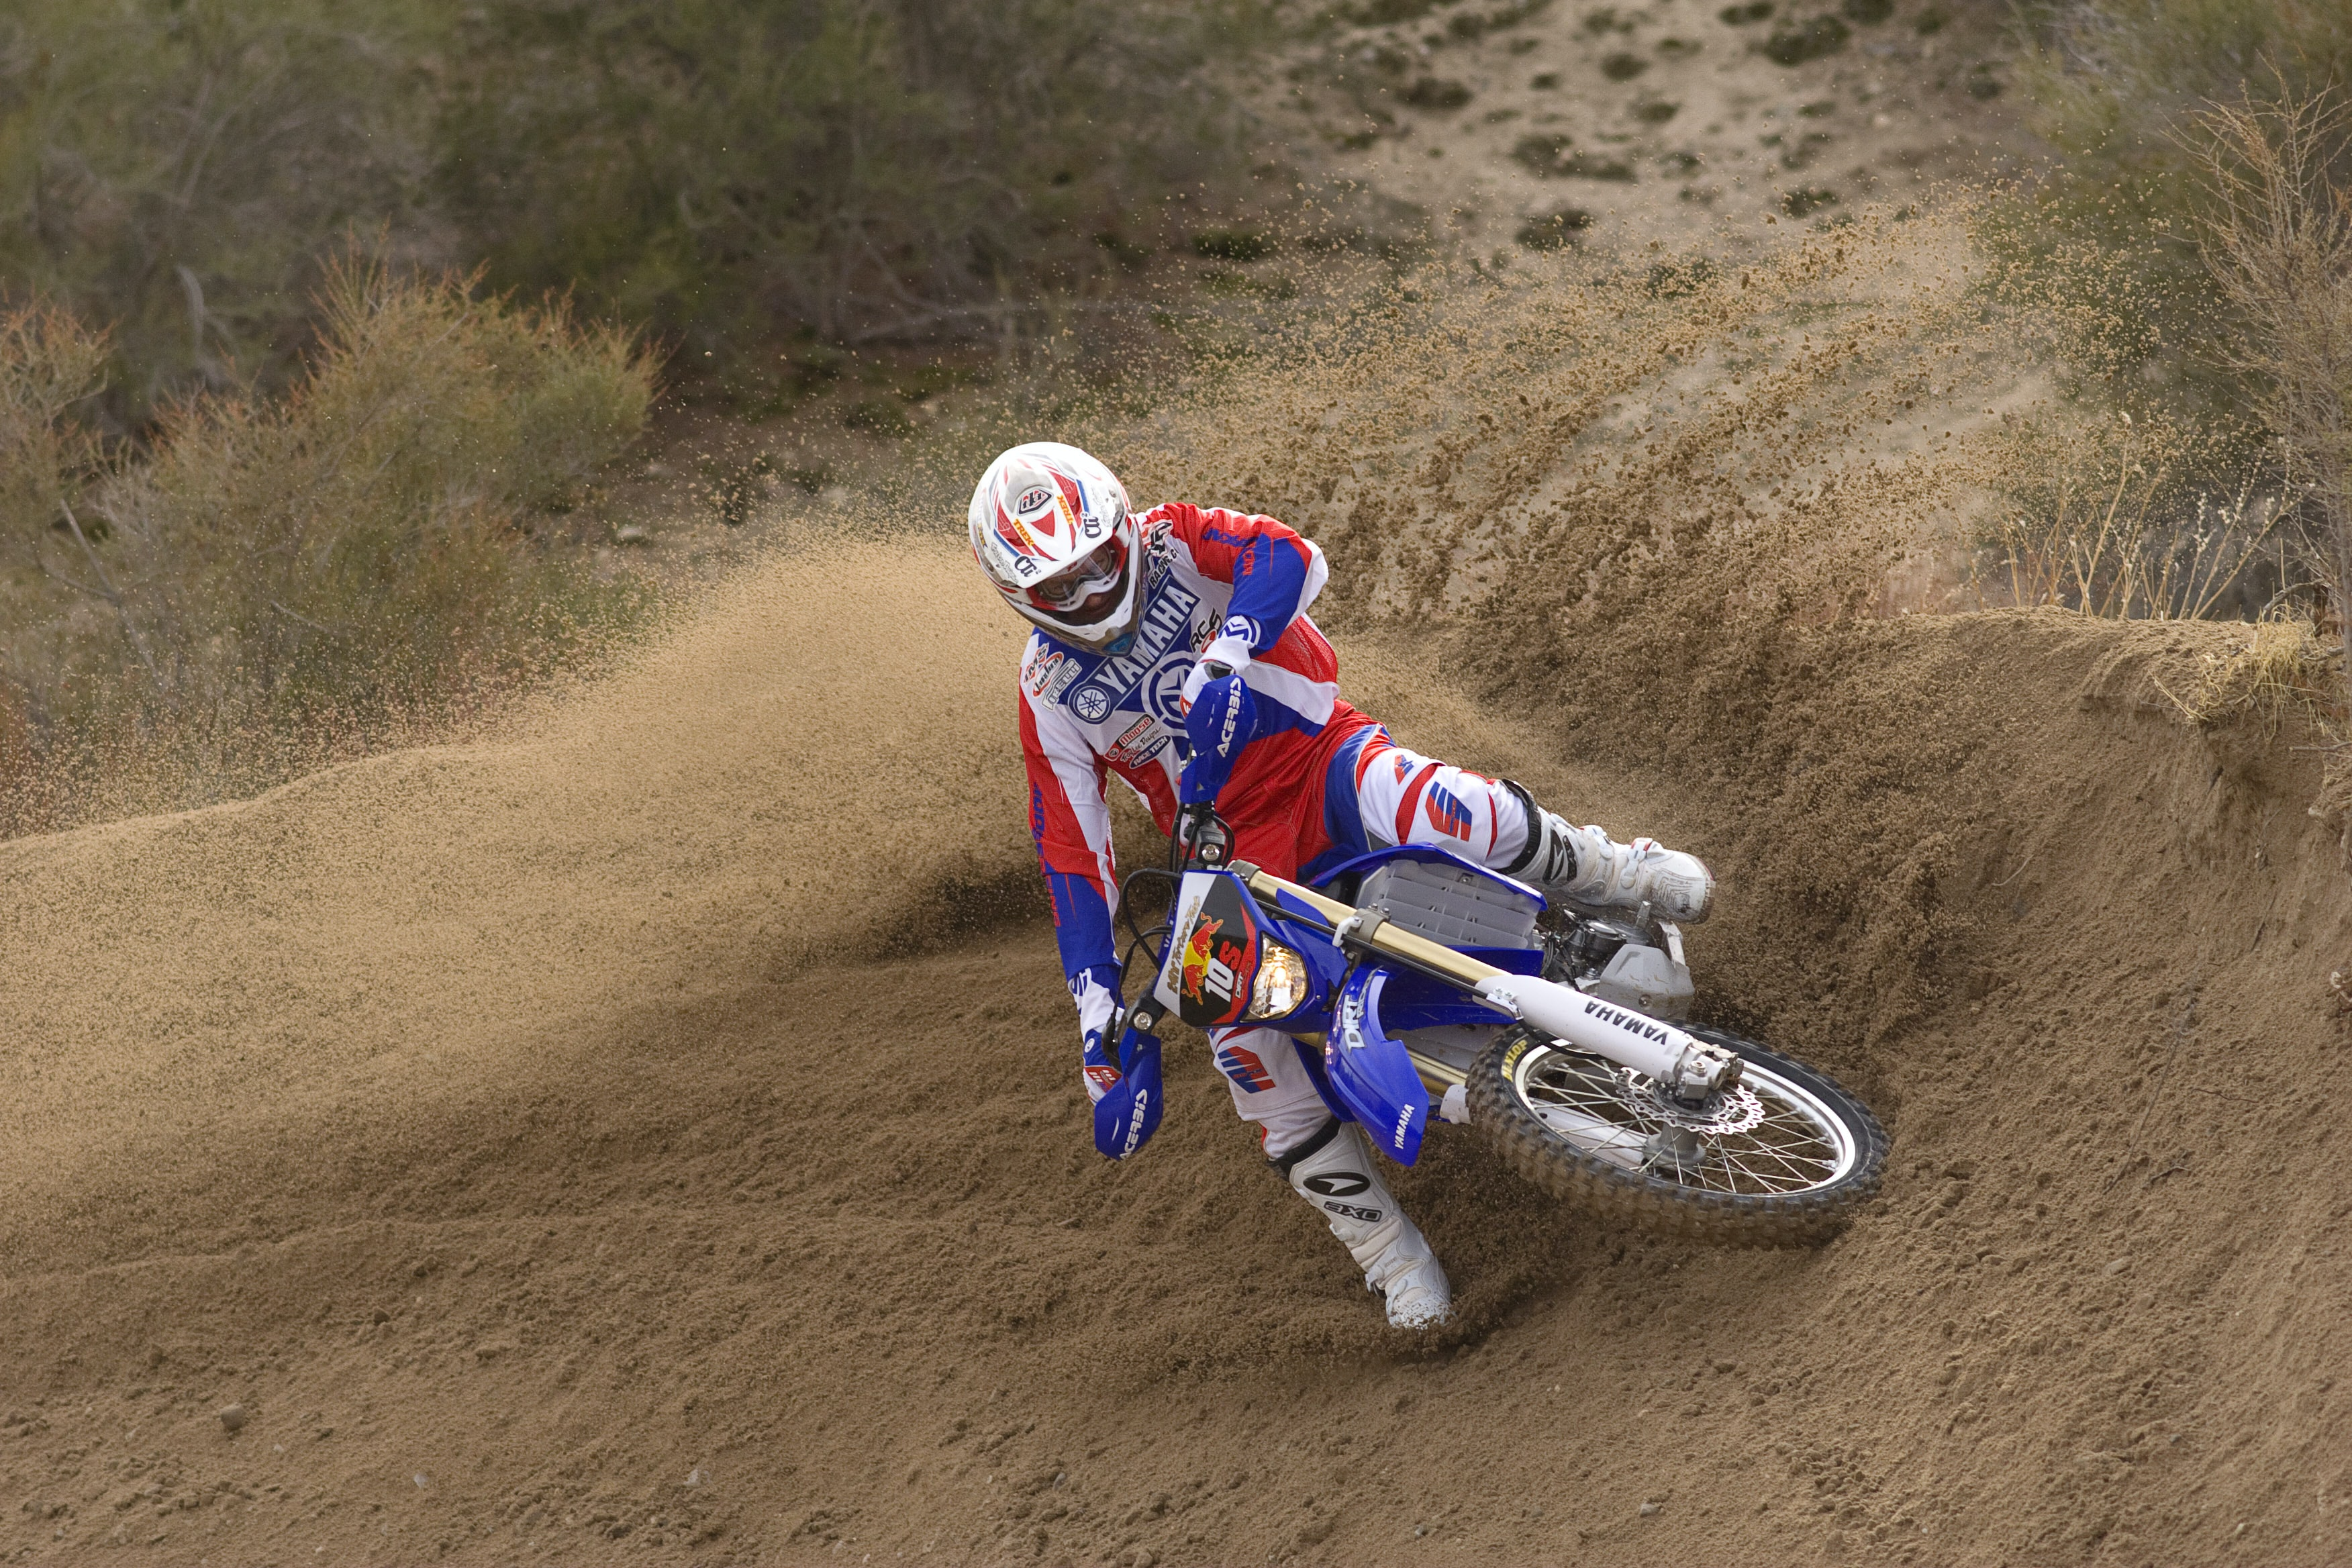 A man turning fast on a dirt hill while riding a dirtbike in Gorman